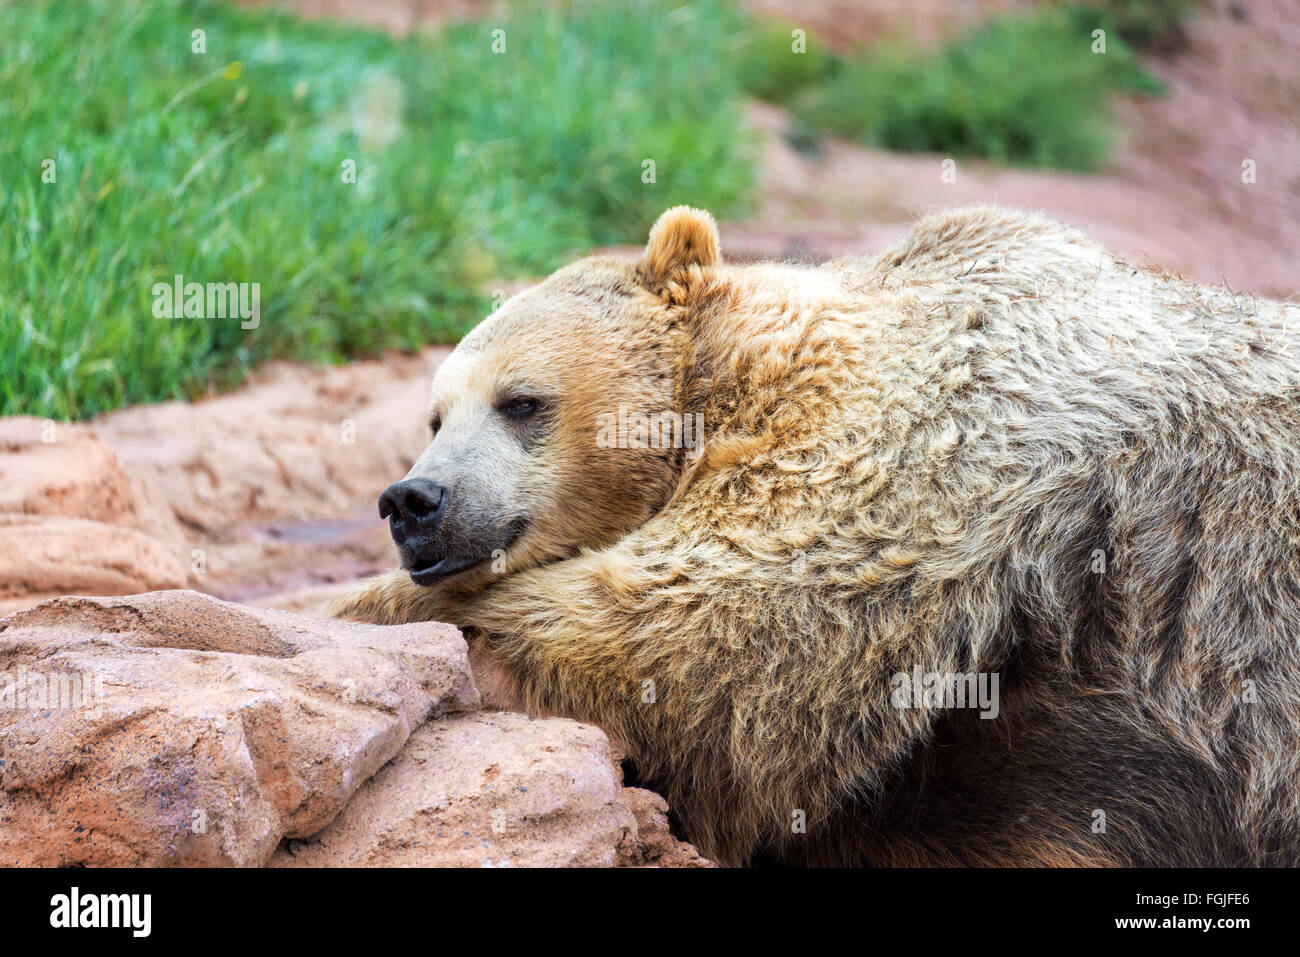 Closeup view of a grizzly bear lying down - Stock Image